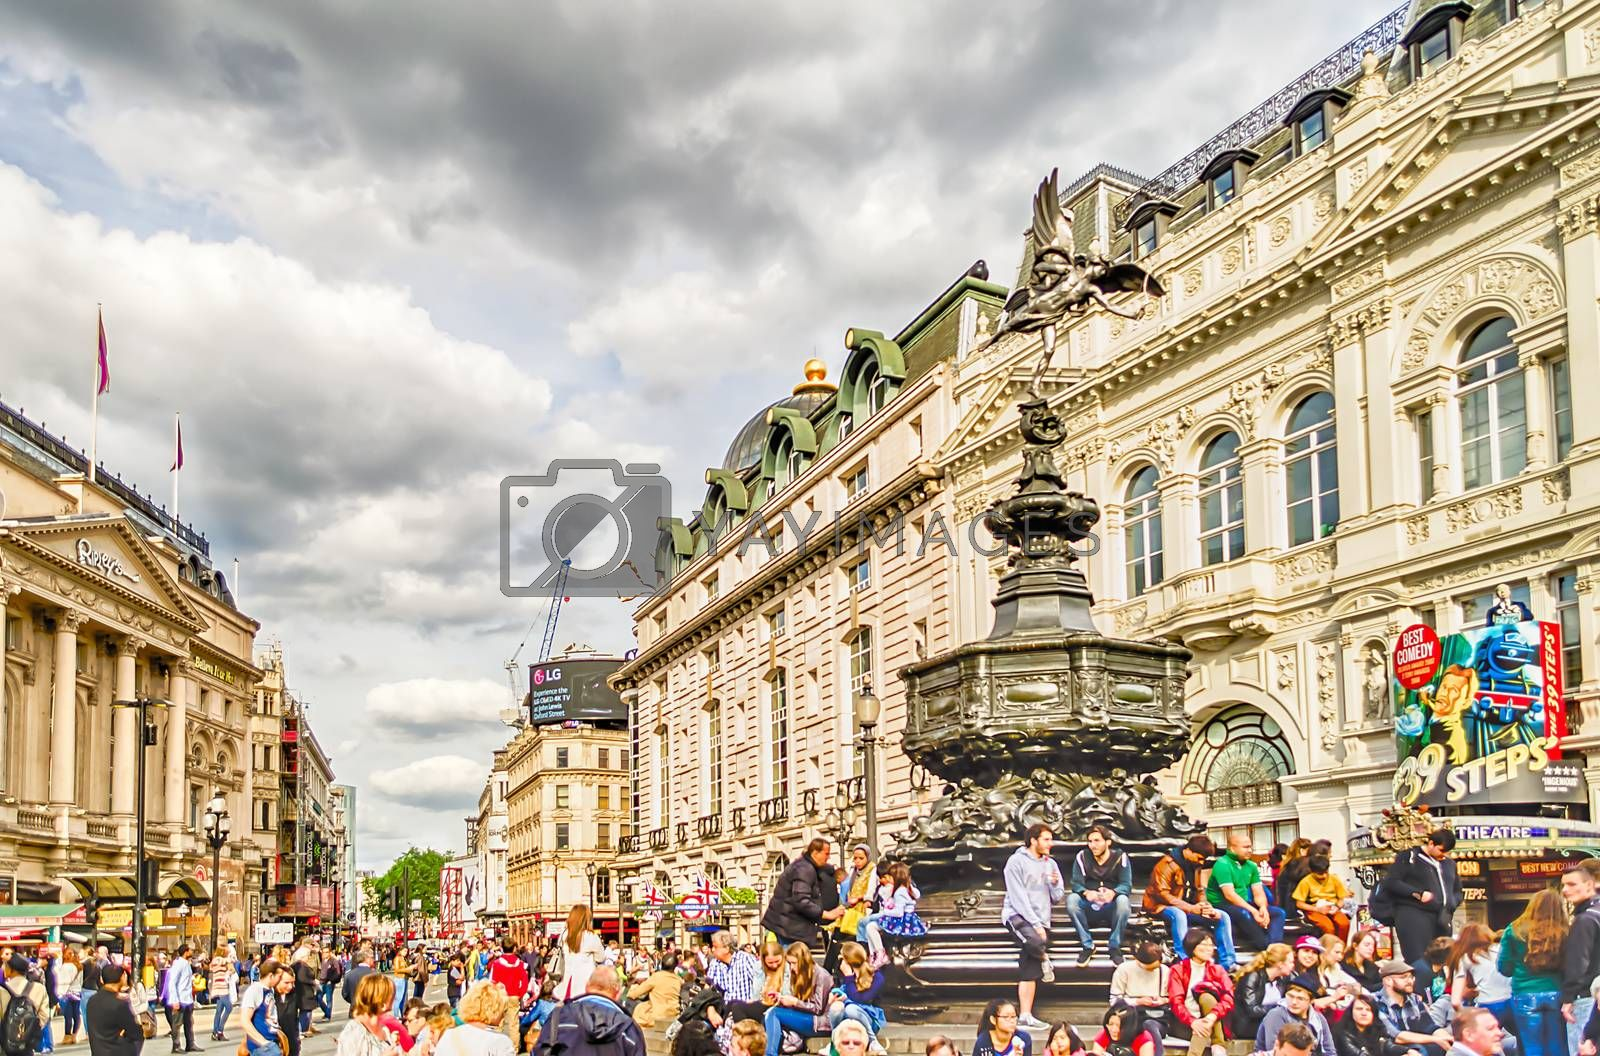 LONDON - MAY 28:Tourists gather around the statue of Eros at Picadilly Circus May 28, 2015 in London. The Circus is close to major shopping and entertainment areas in the West End